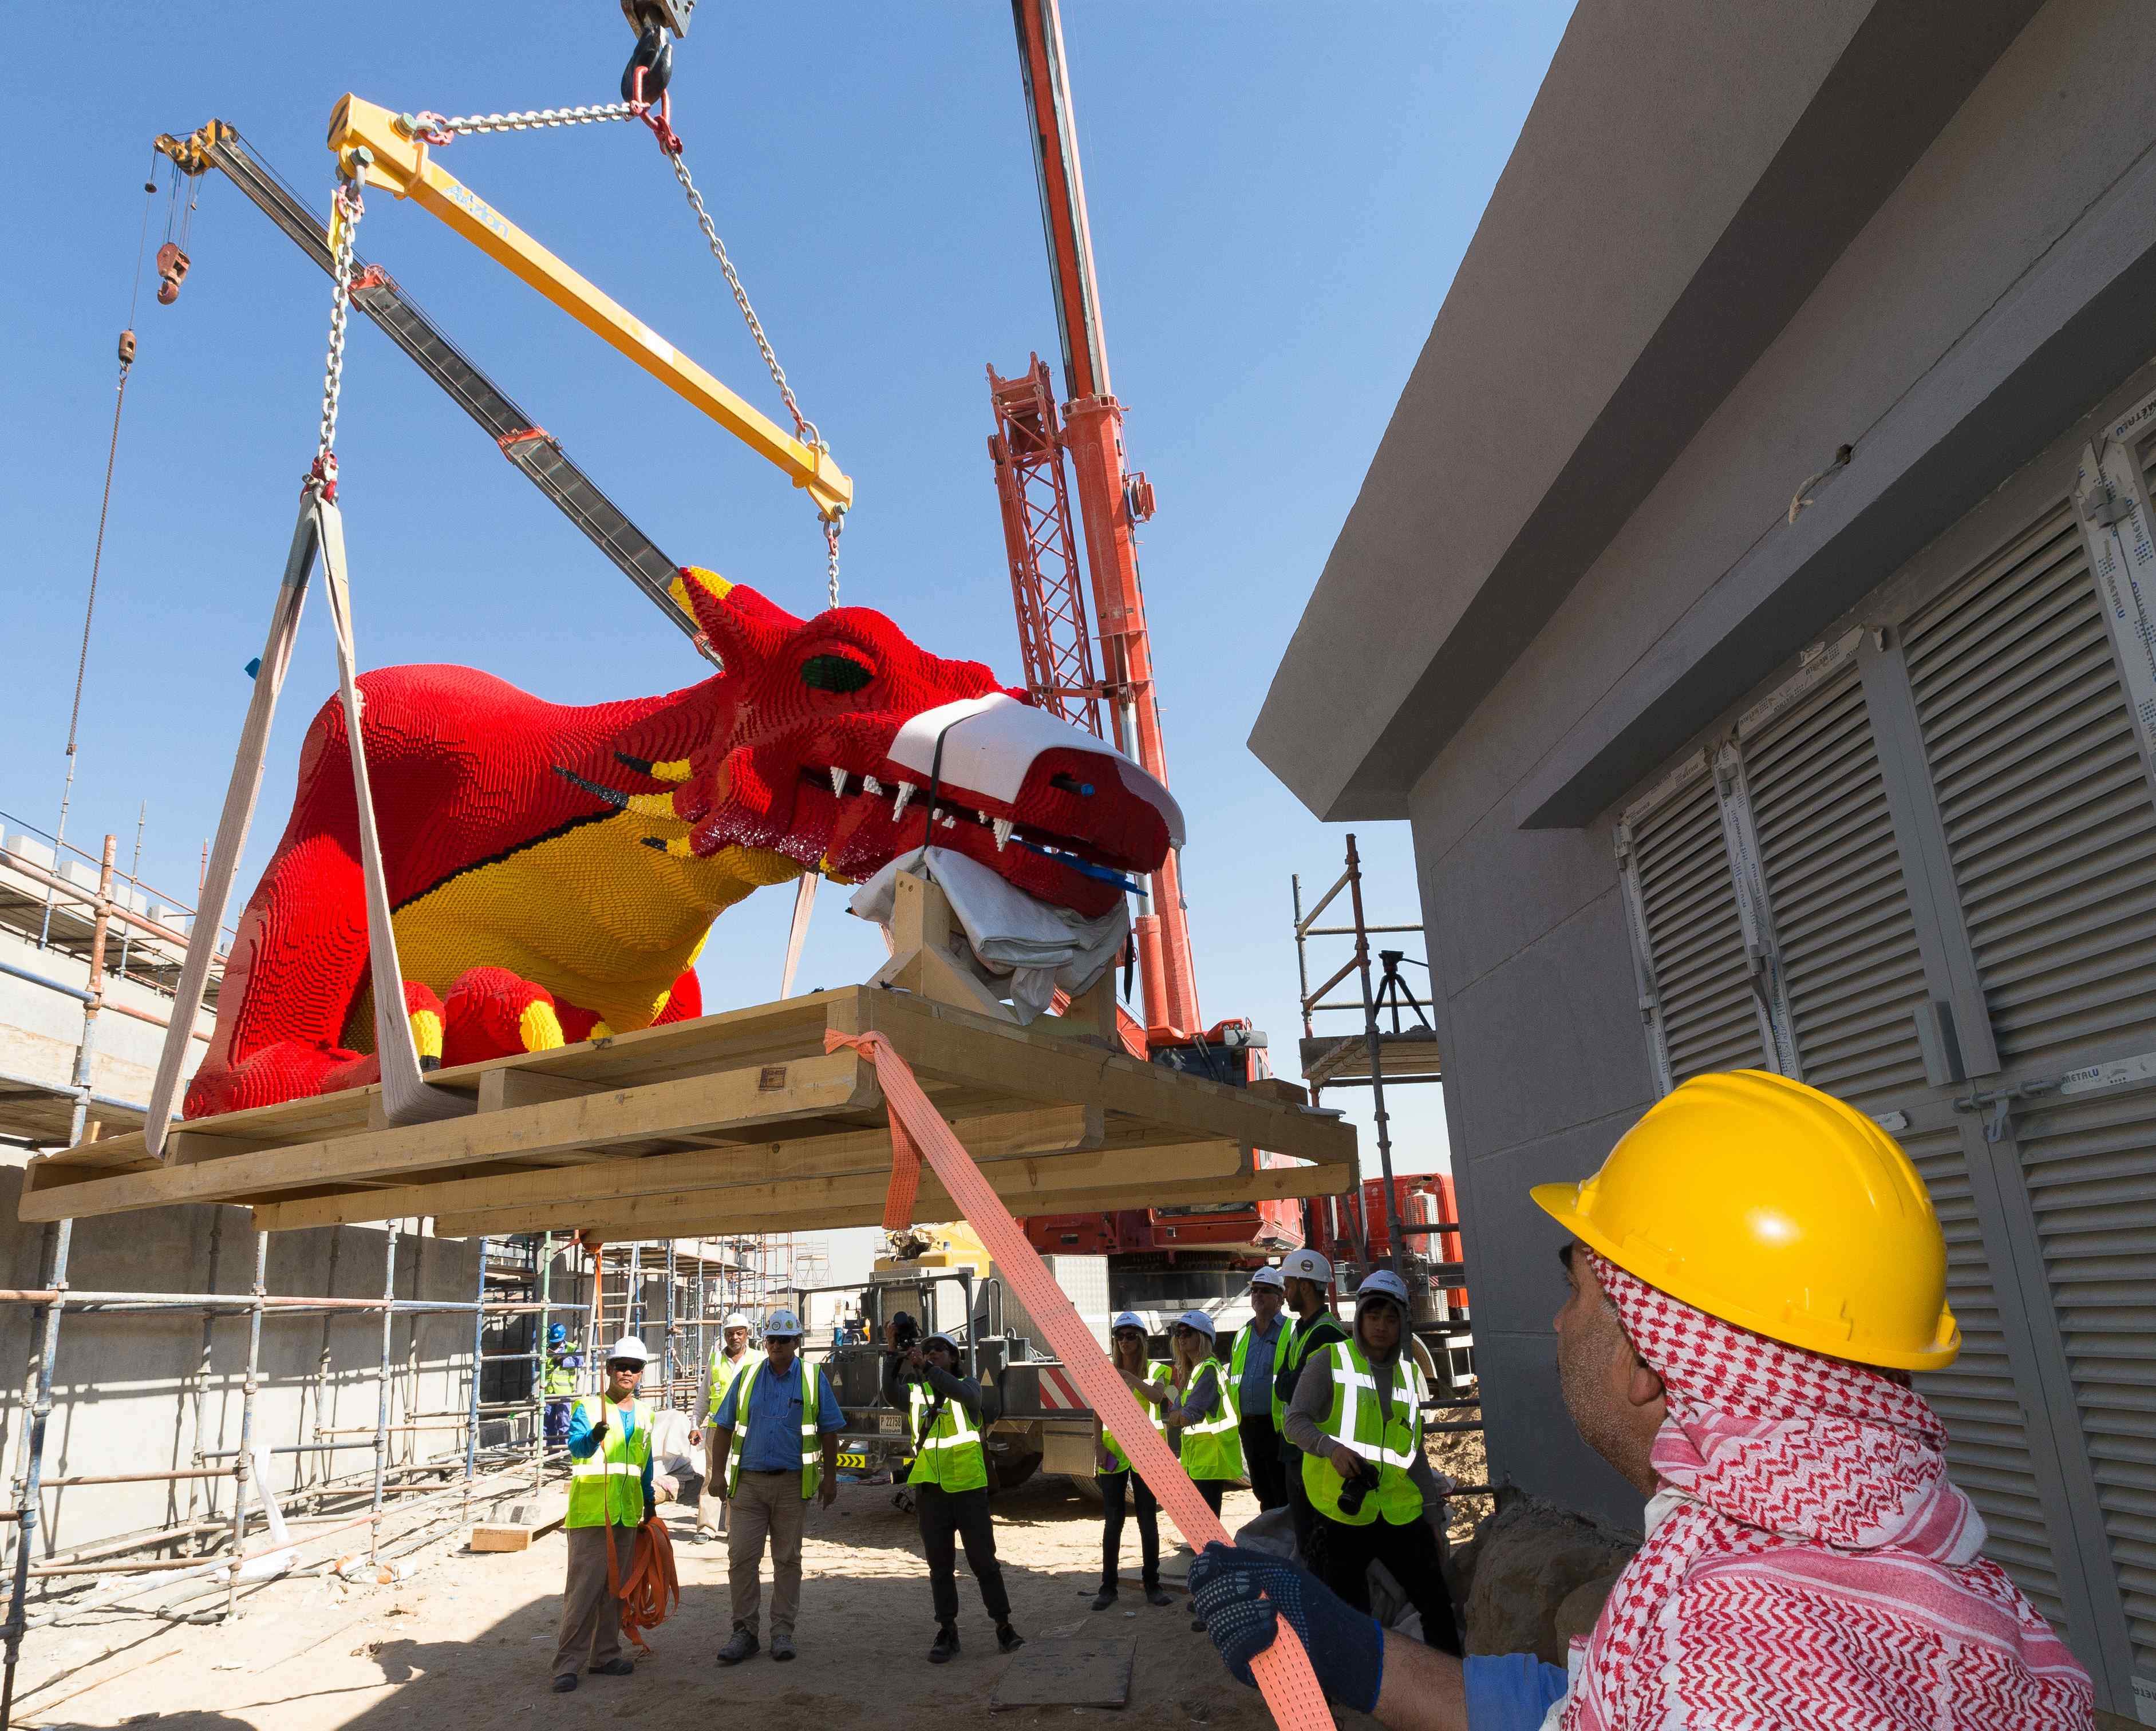 The-Red-Dragon-moves-into-its-new-home-at-LEGOLAND®-Dubai